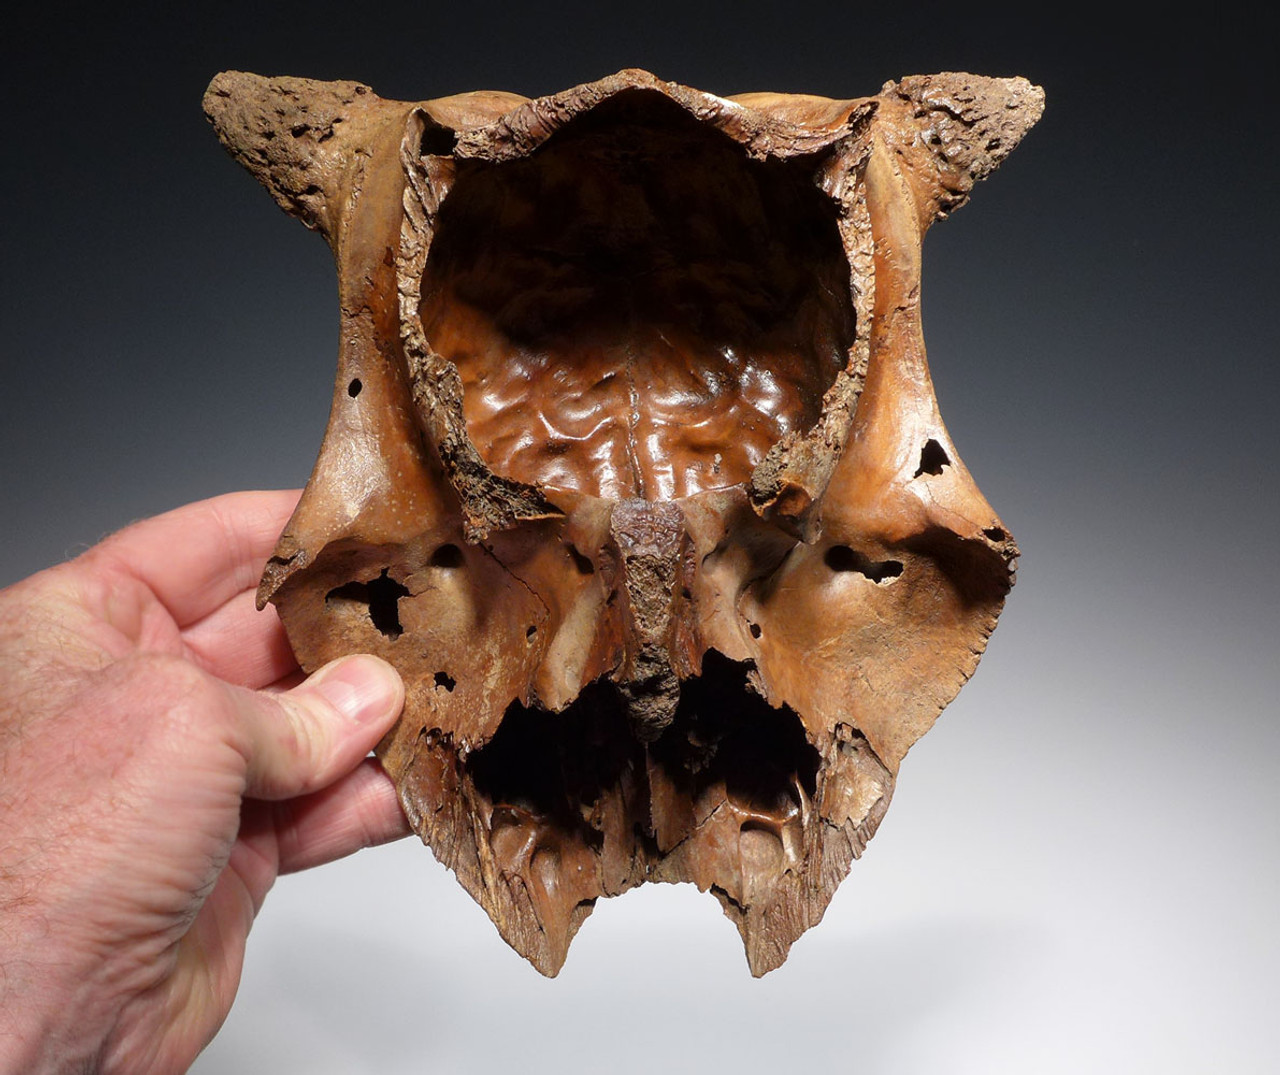 RARE BABY PLEISTOCENE LATE AUROCHS PARTIAL SKULL FOSSIL FROM EUROPE *LMXS03